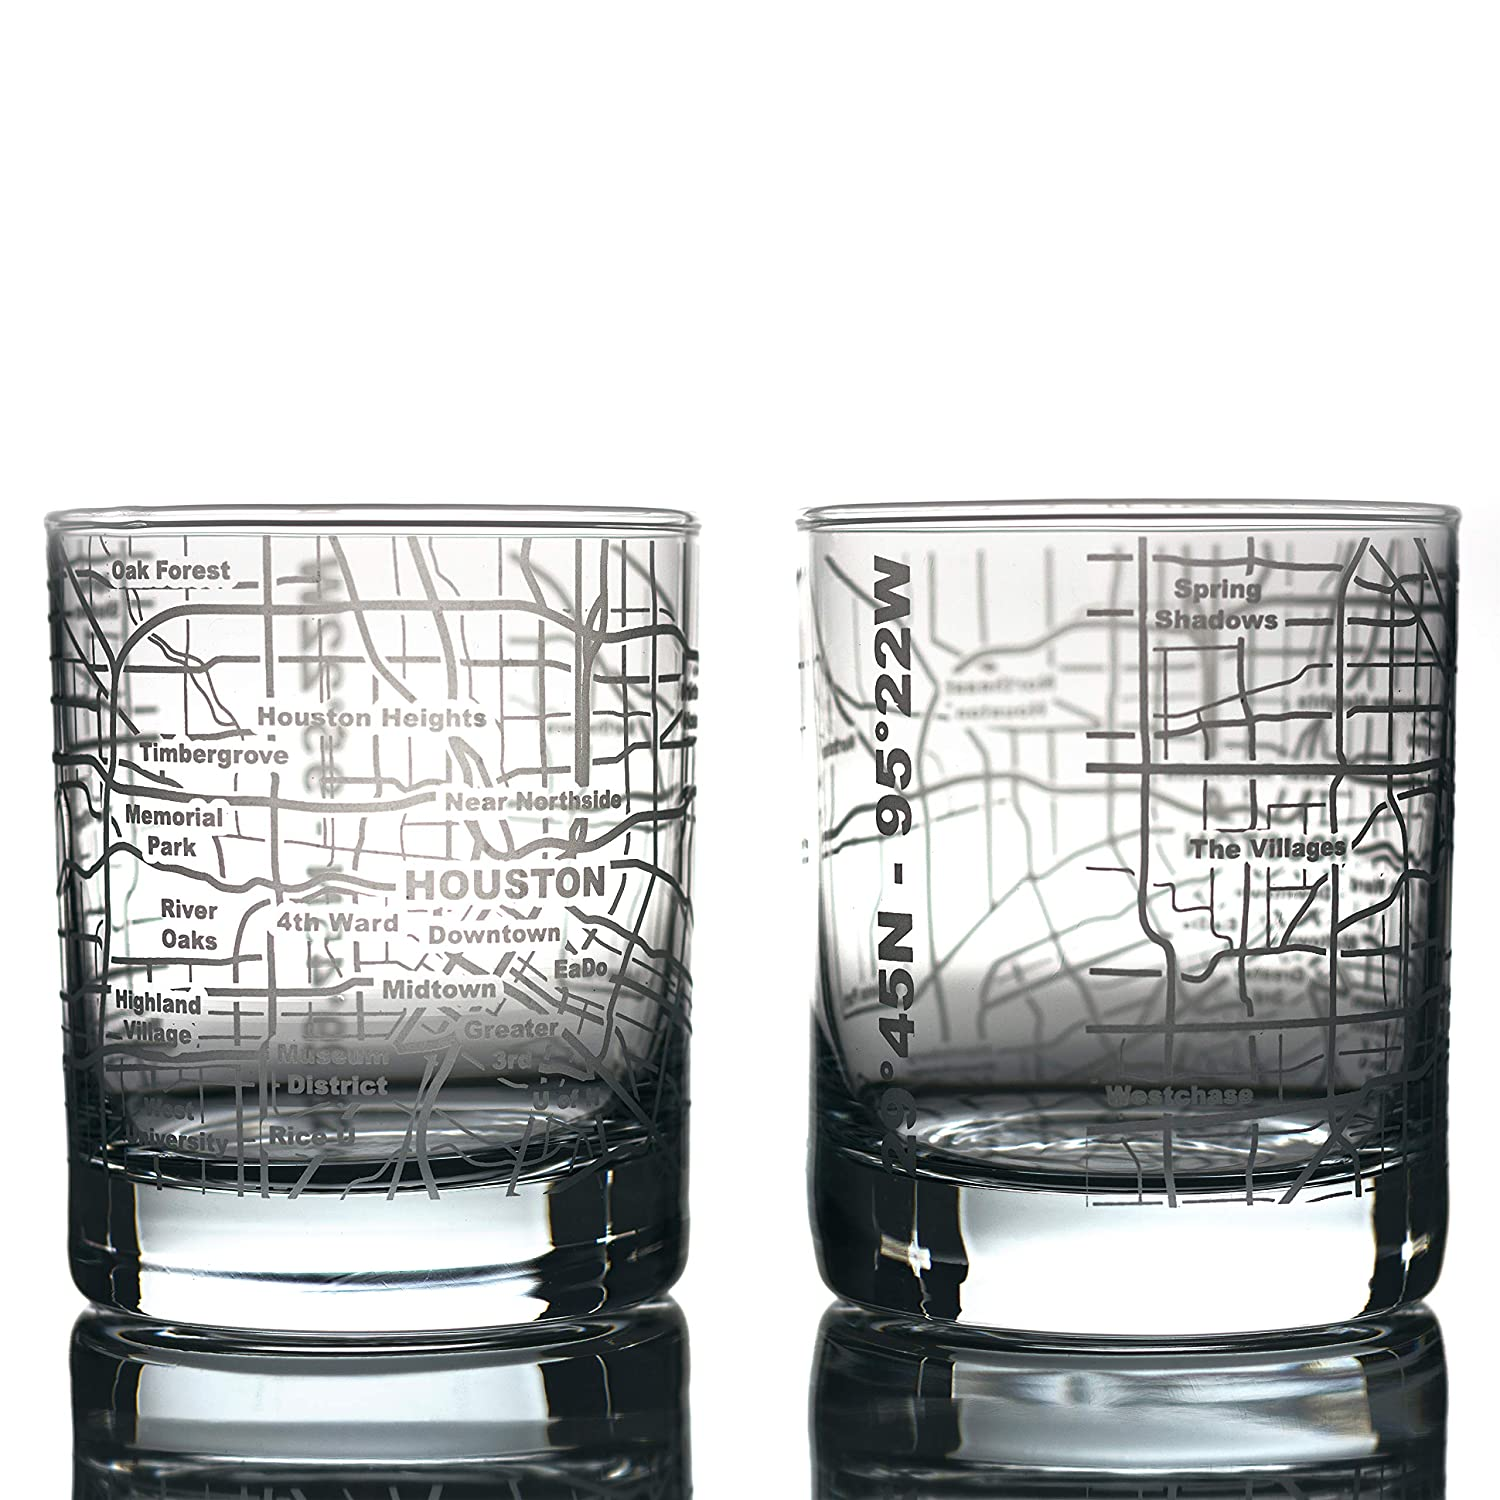 Greenline Goods Whiskey Glasses - 10 Oz Tumbler Gift Set for Houston lovers, Etched with Houston Map   Old Fashioned Rocks Glass - Set of 2